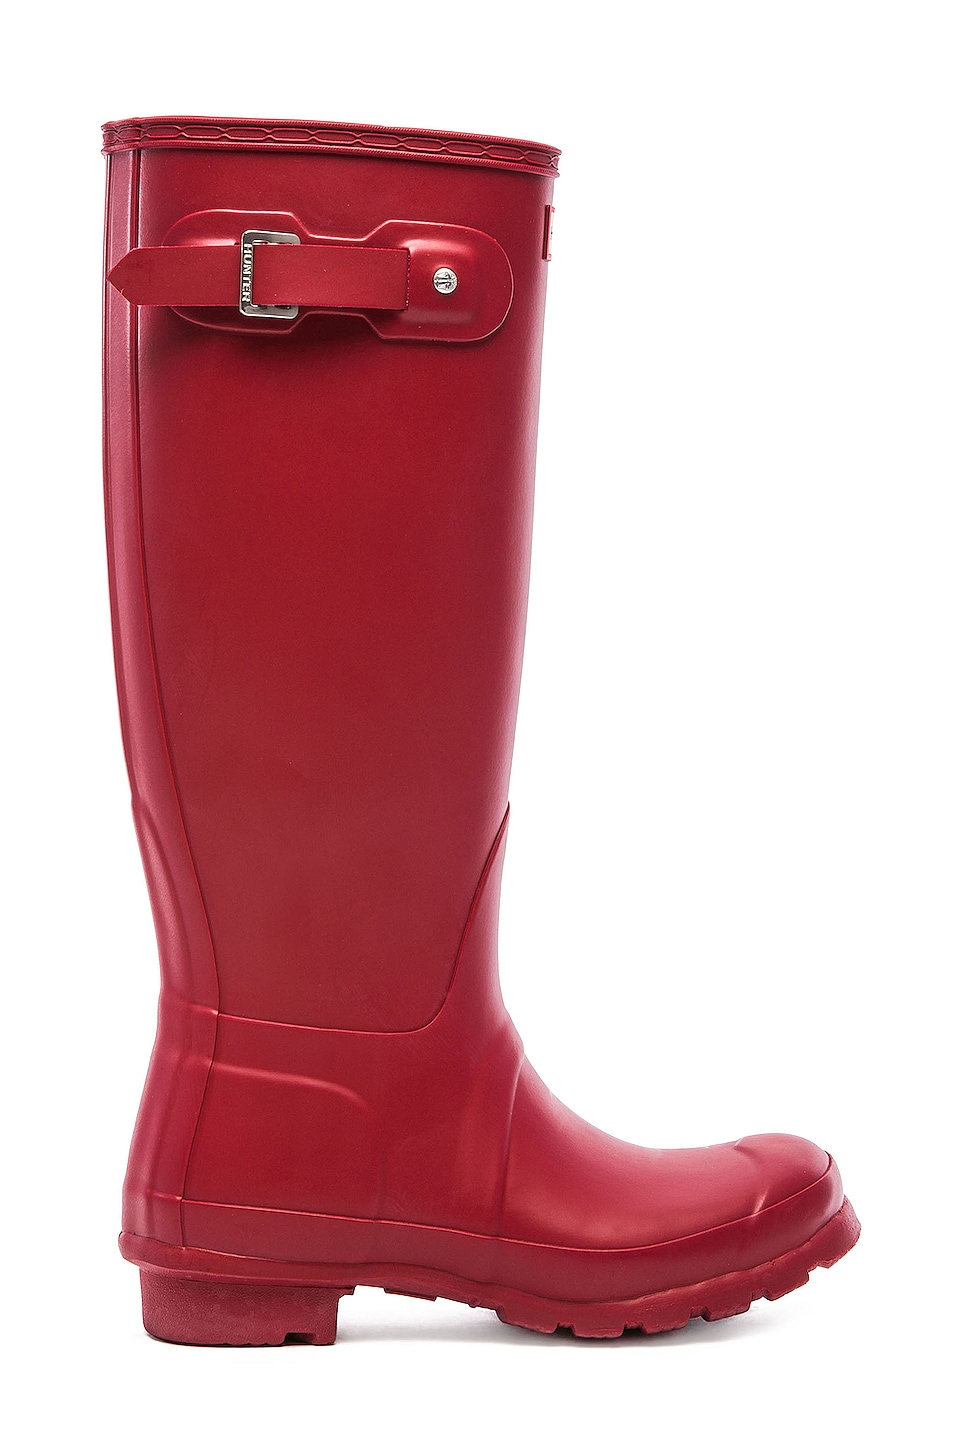 Hunter Original Tall Rain Boot in Military Red